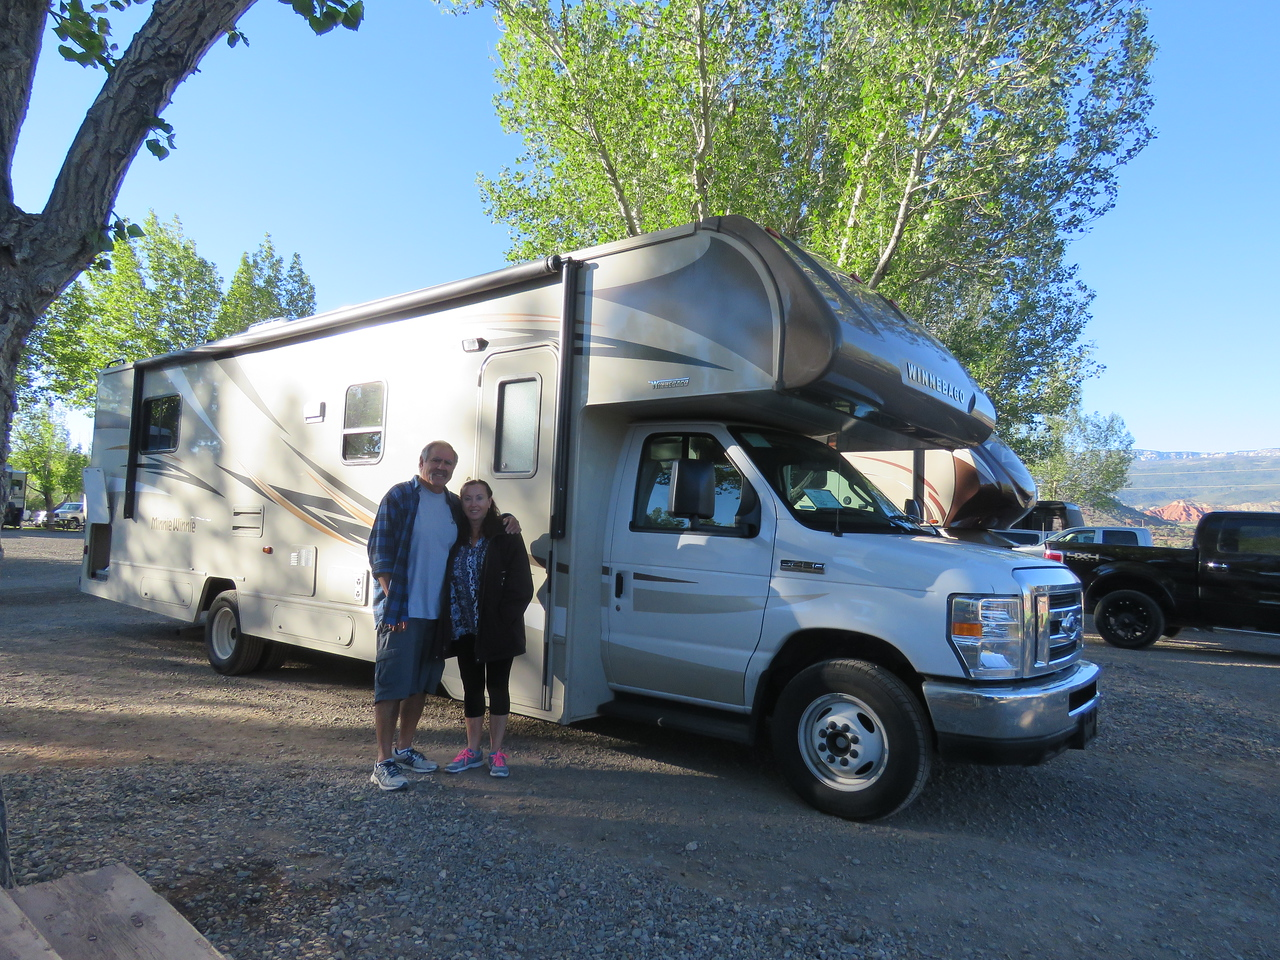 Day 19 - Thousand Lakes RV Park, UT